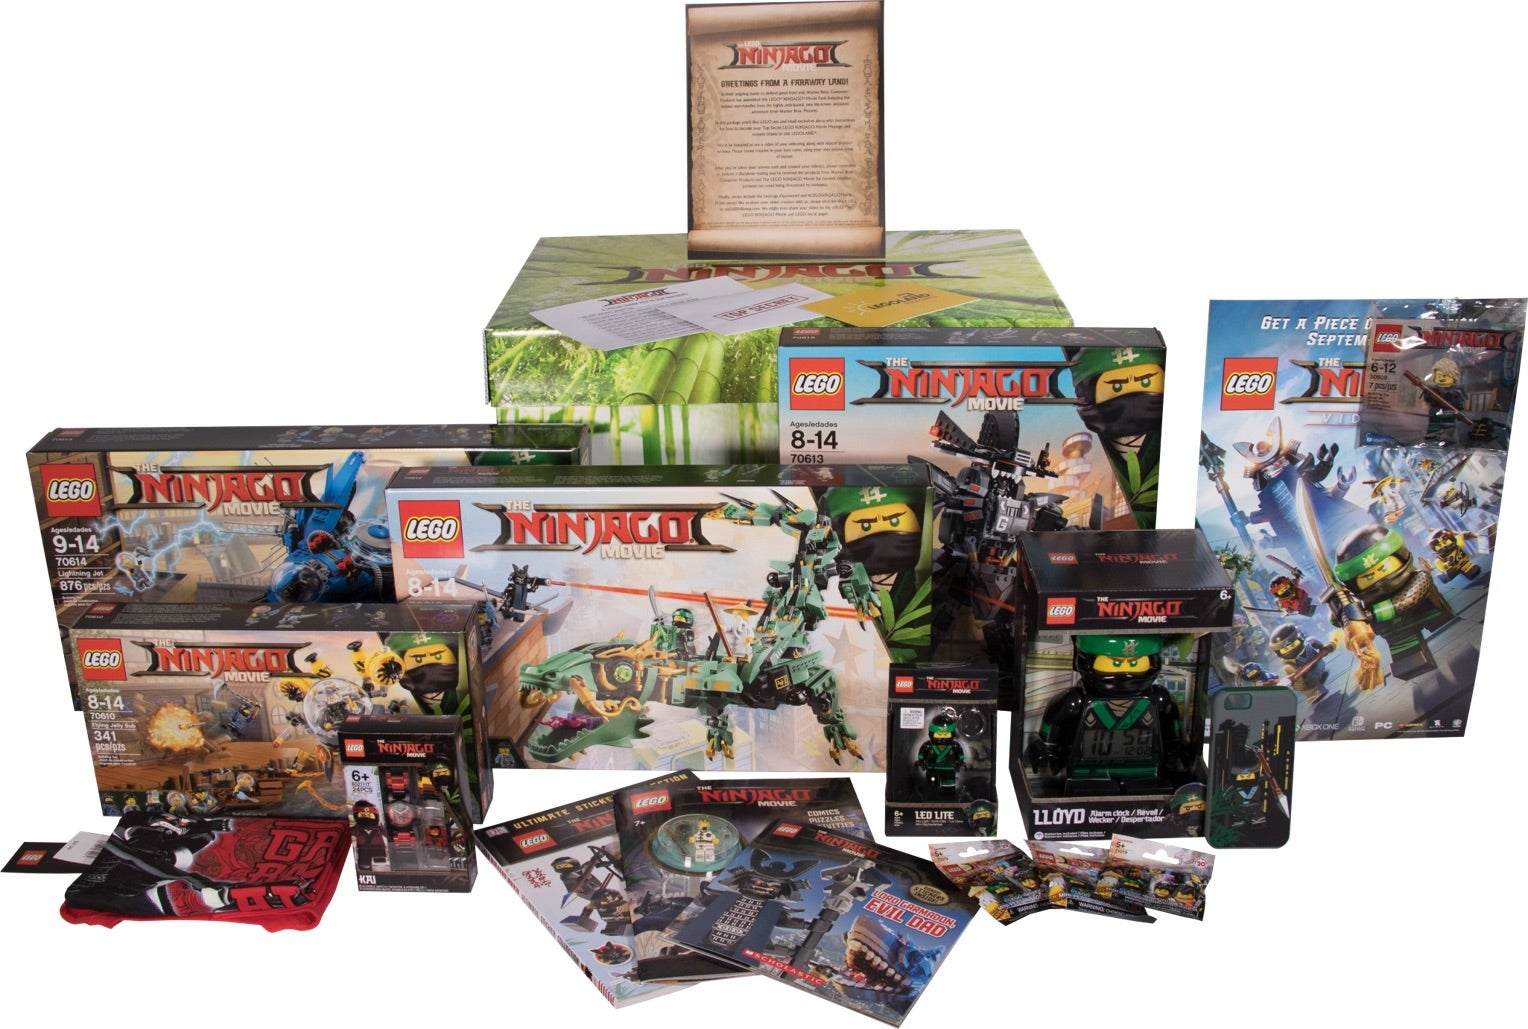 Giveaway Products - The LEGO Ninjago Movie